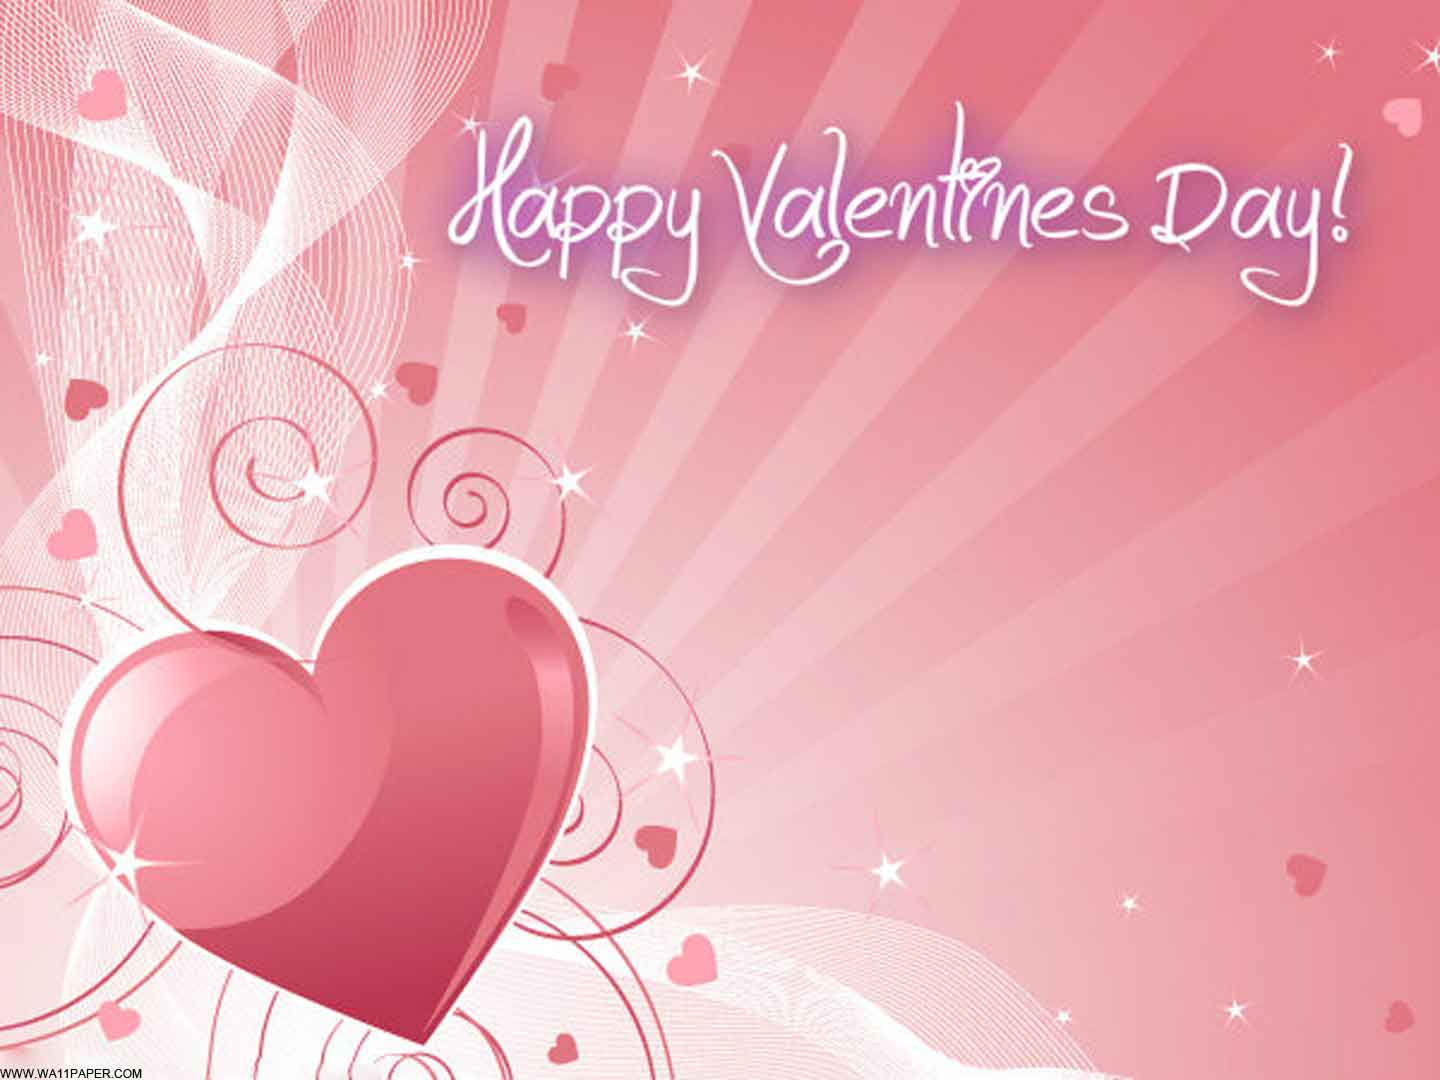 valentines day hearts picture 2015 ♥♥ heart photos and wallpapers ...